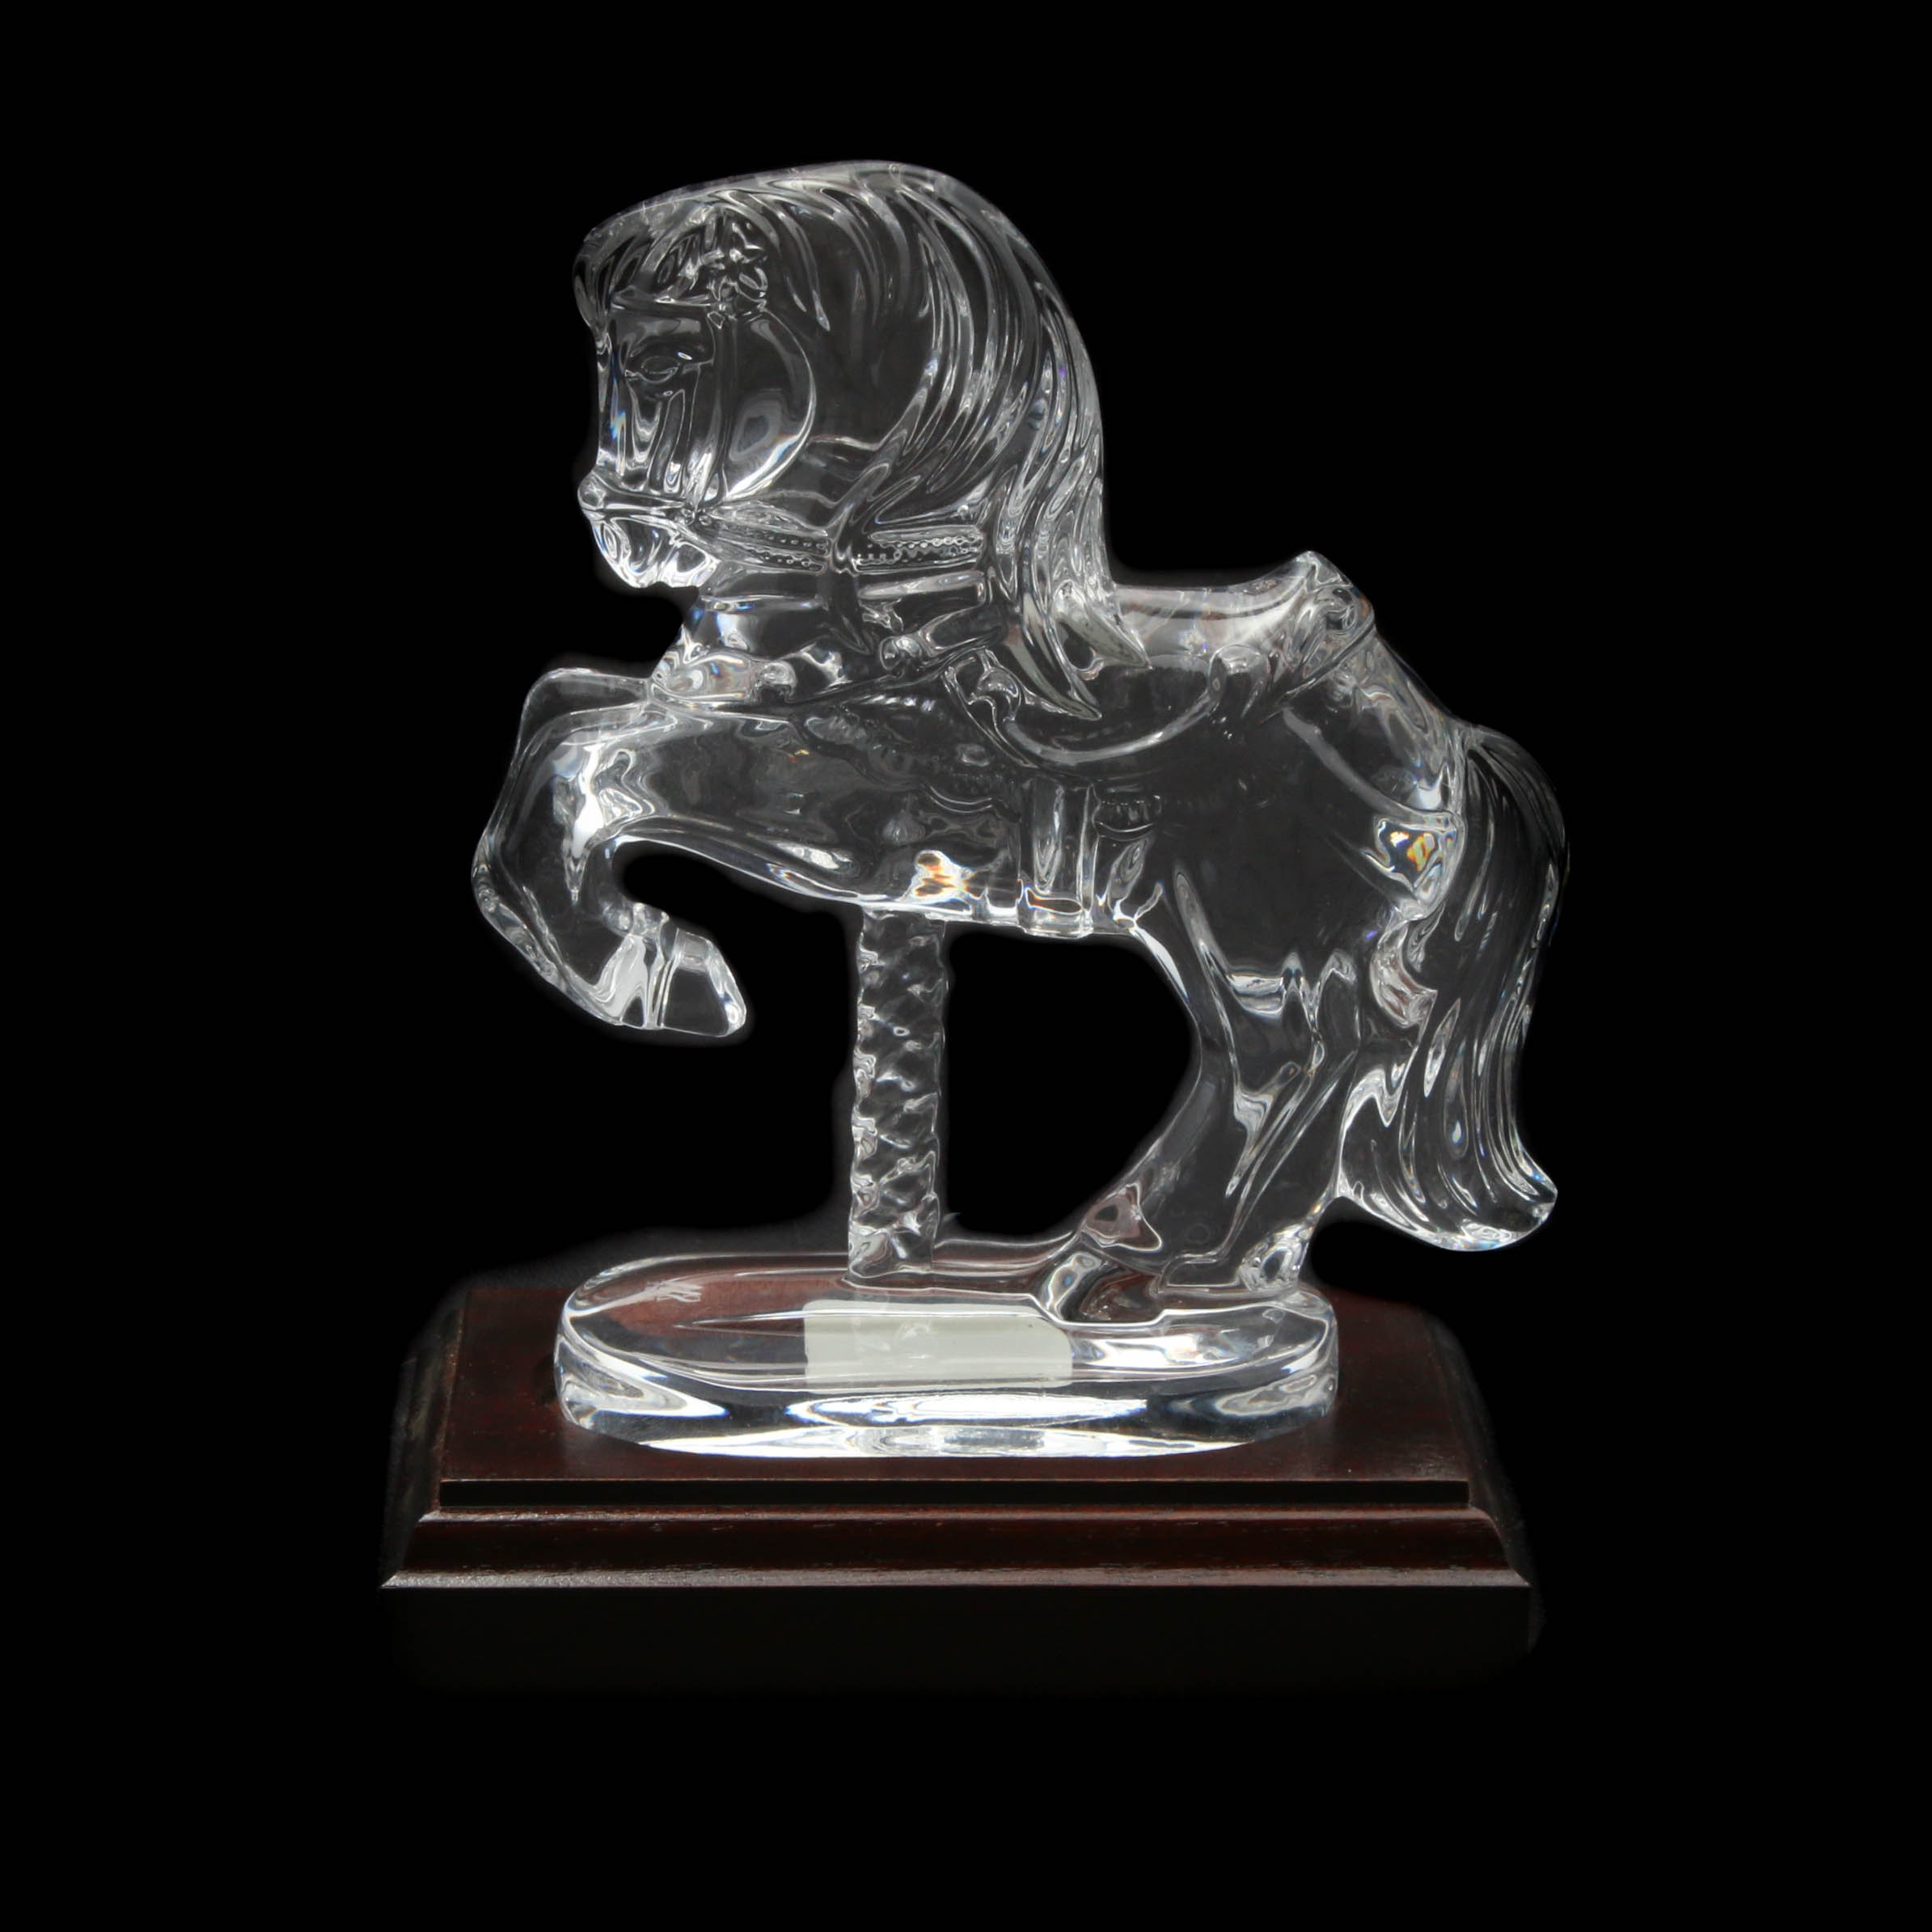 """Waterford Crystal """"Carousel Horse"""" by Paddy O'Hanlon"""